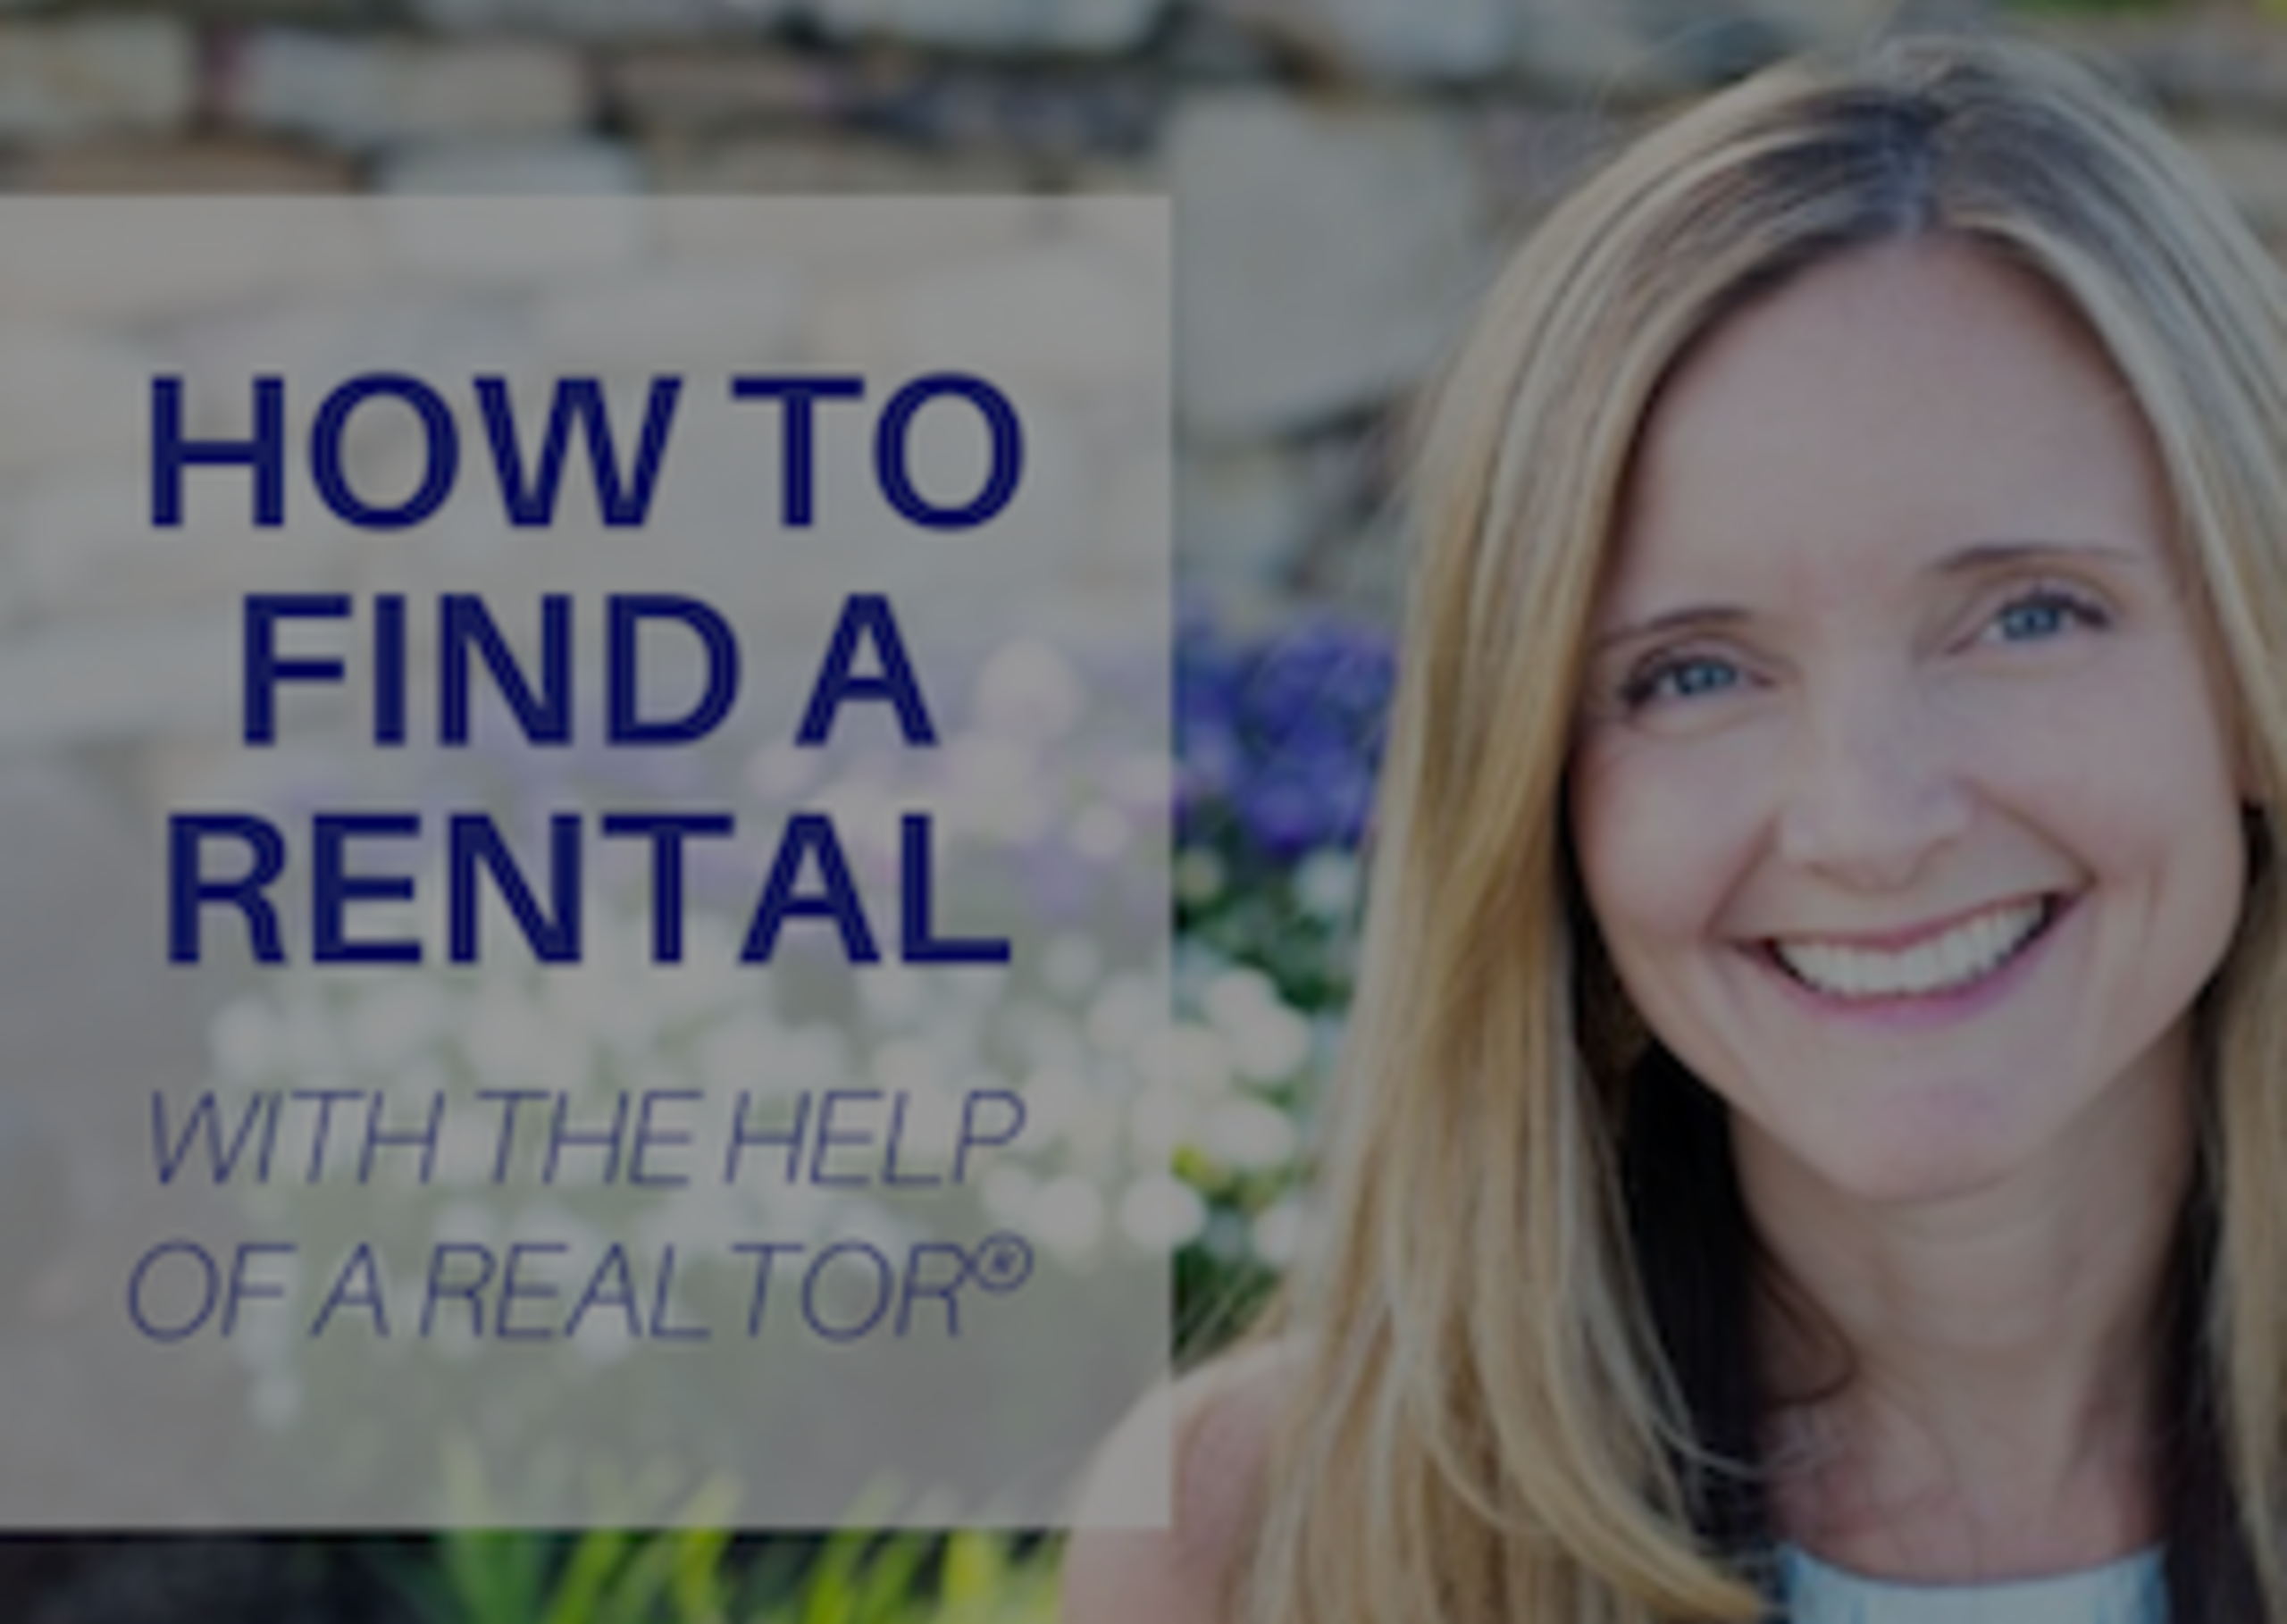 How to Find a Rental with the Help of a Realtor